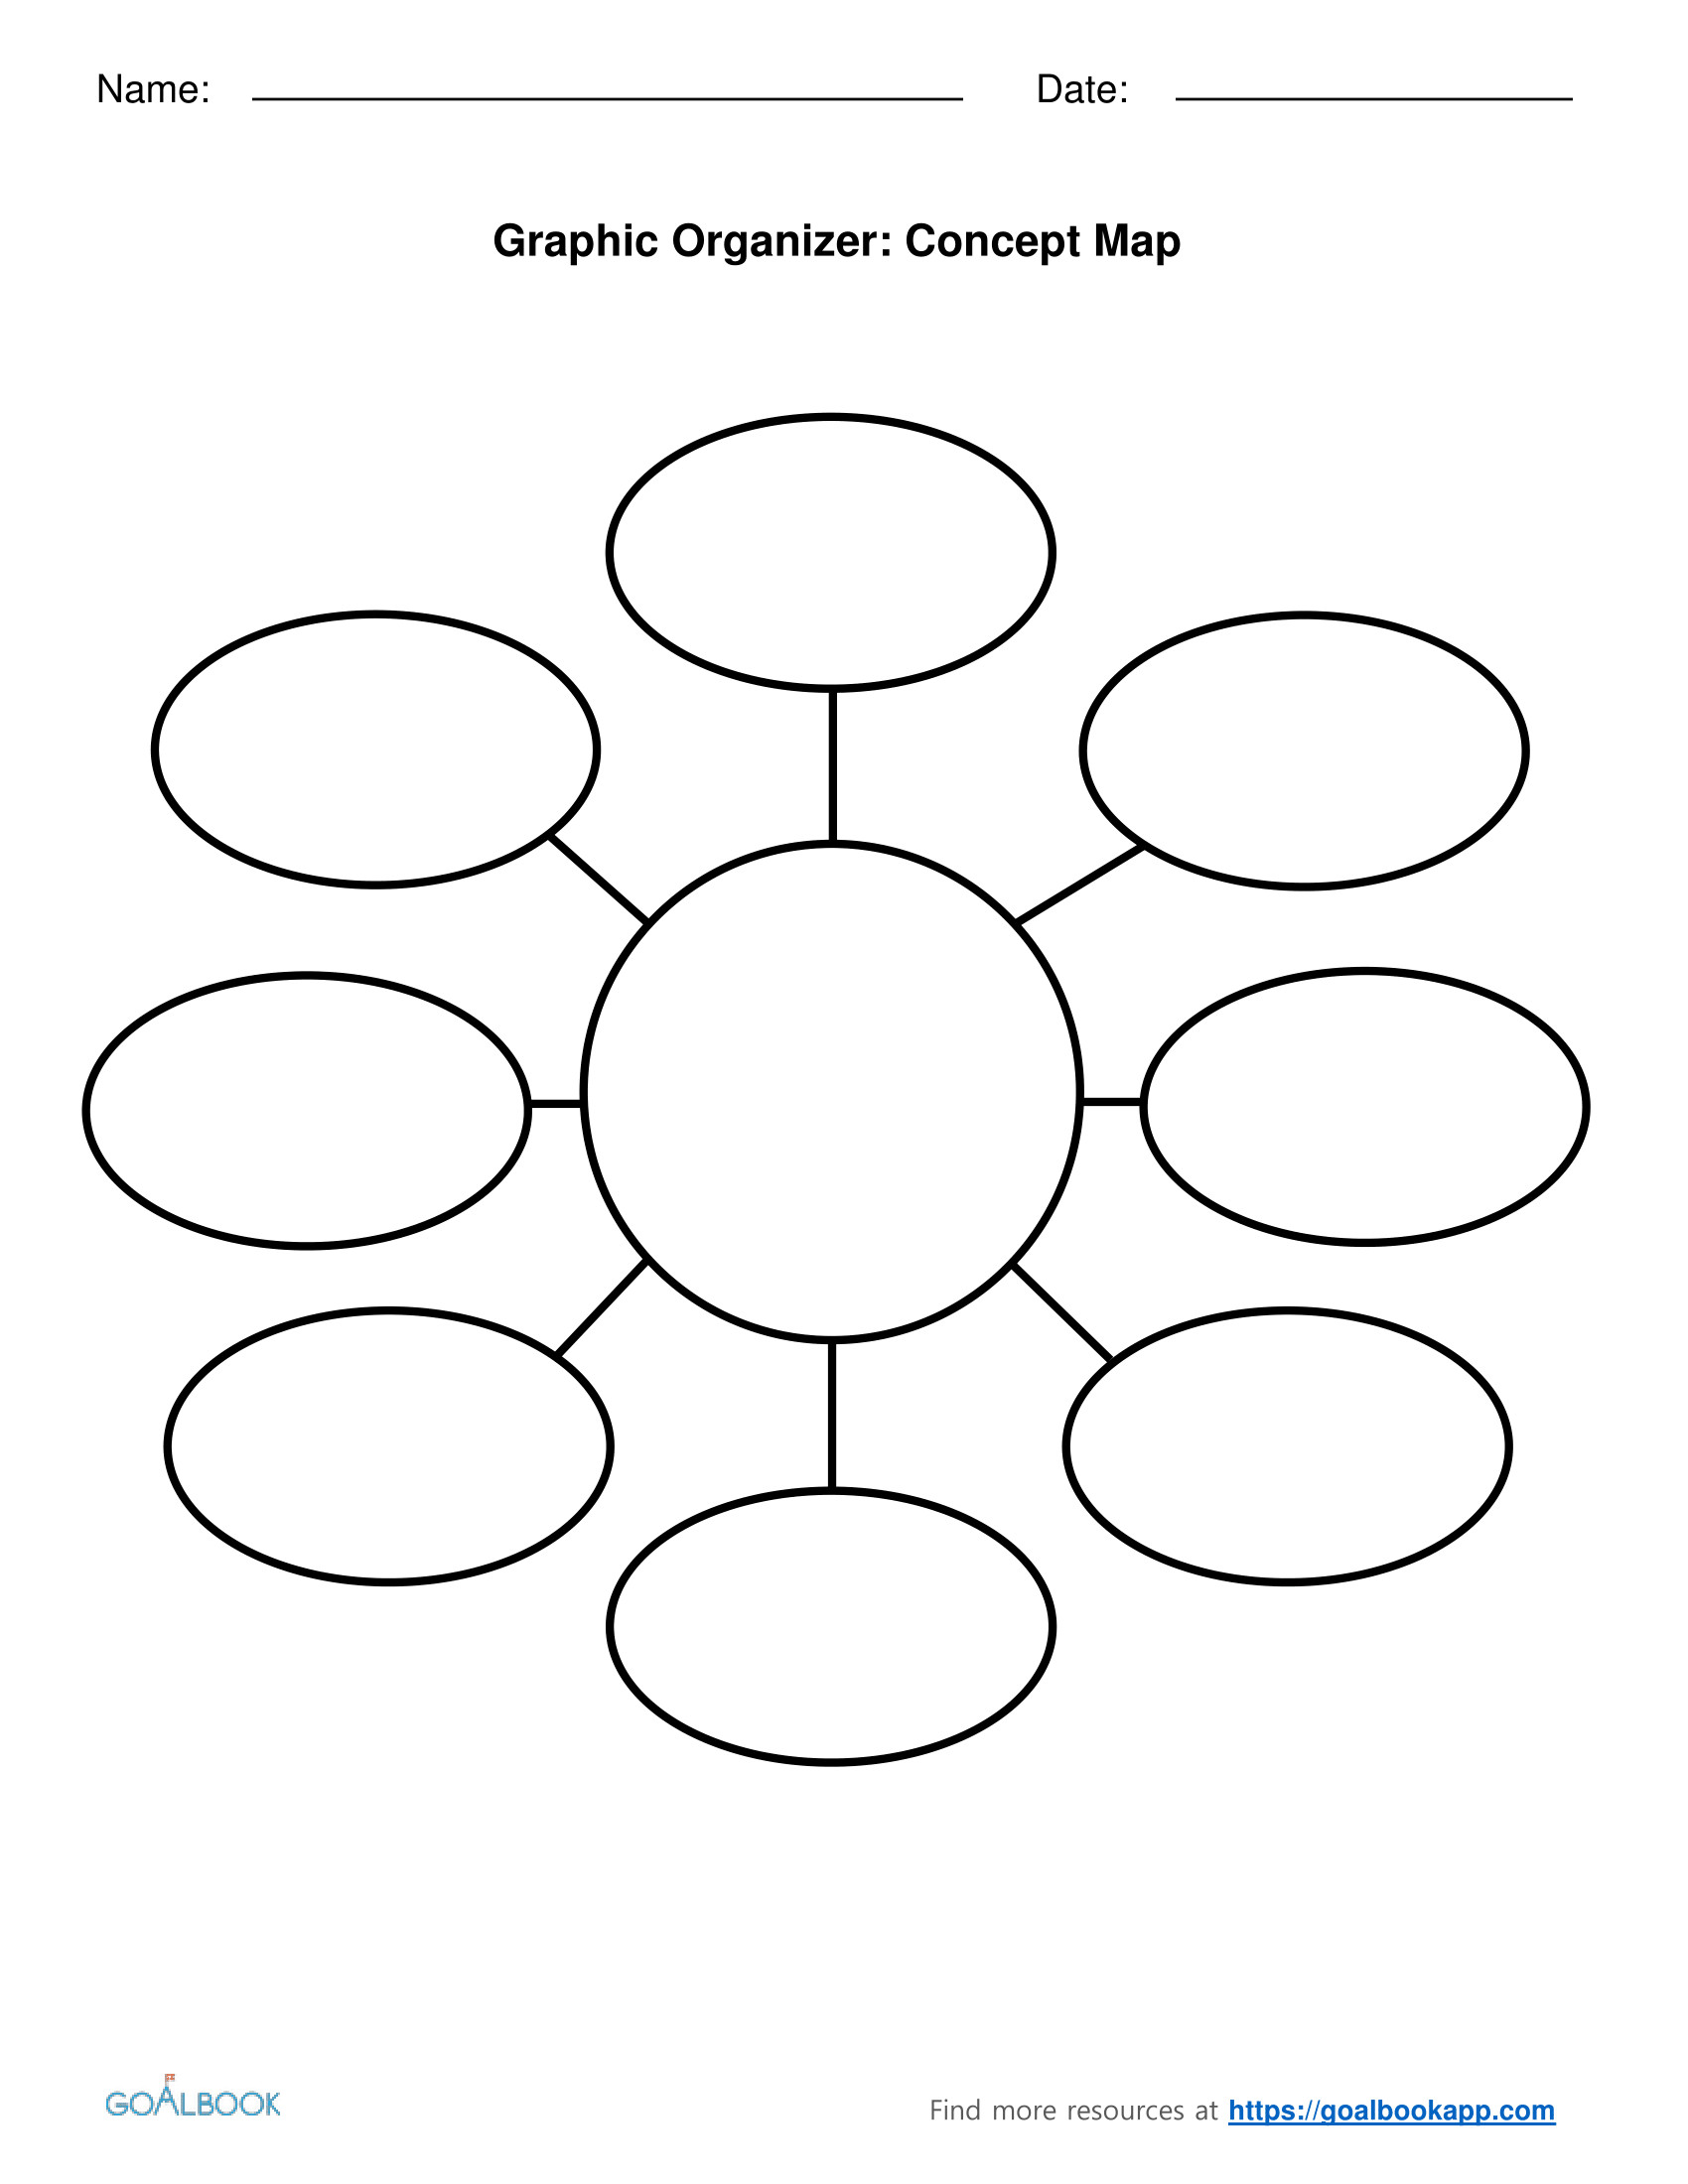 Blank Concept Map Template Graphic organizers for Brainstorming